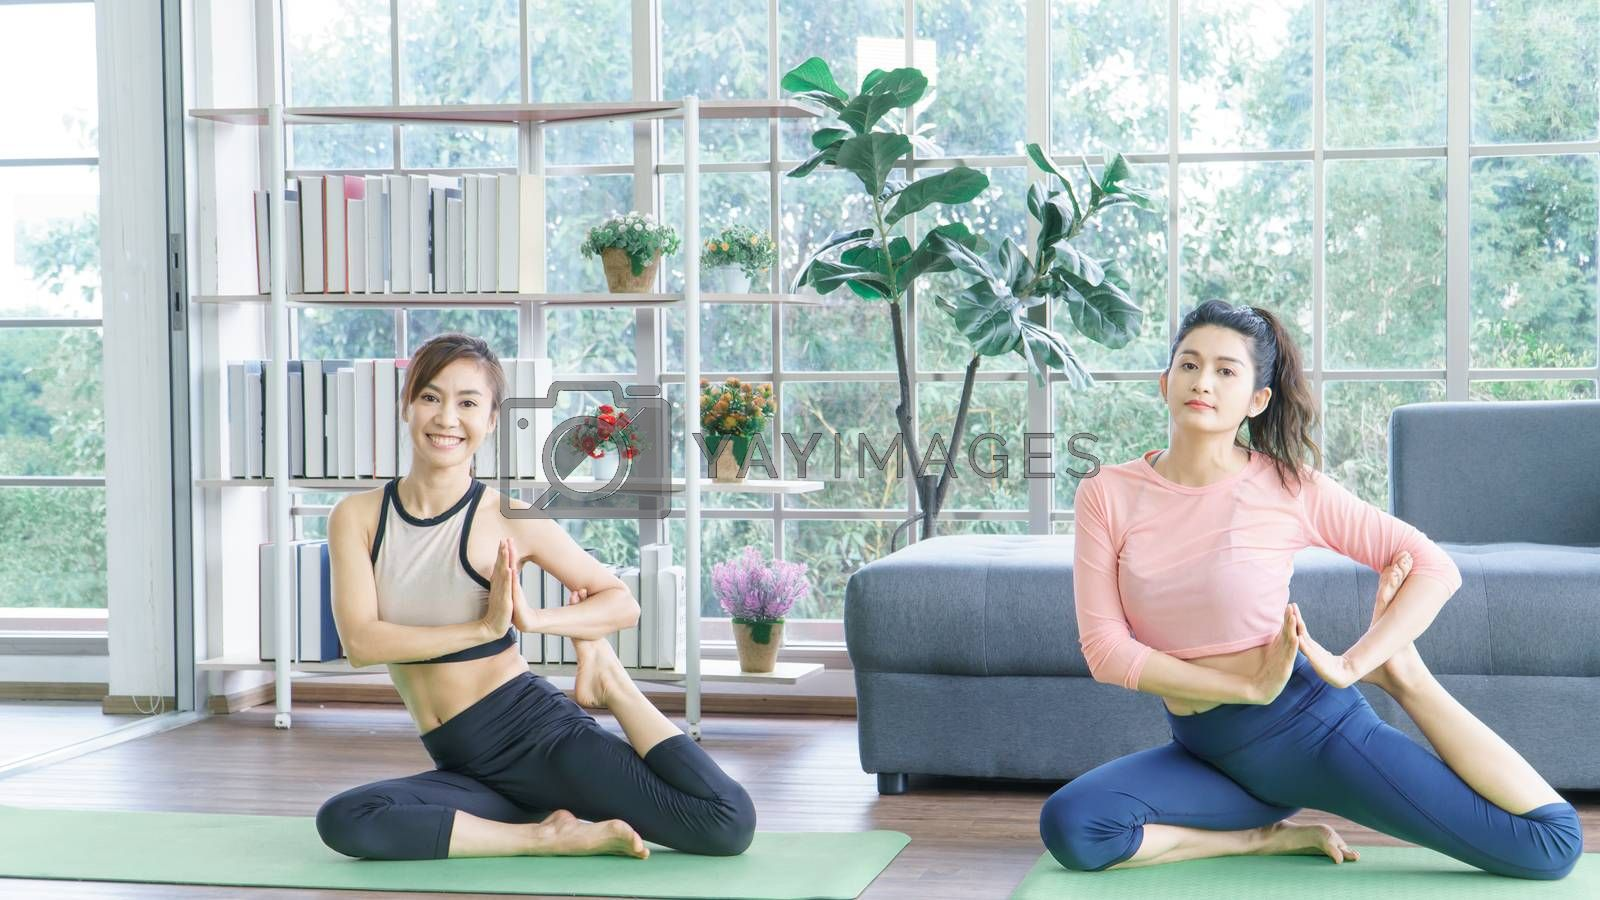 Attractive middle-aged women in Asia practice yoga, sit meditation For a balanced life at home. Sporty wears Sportswear to stretch the body with asana administration positions.